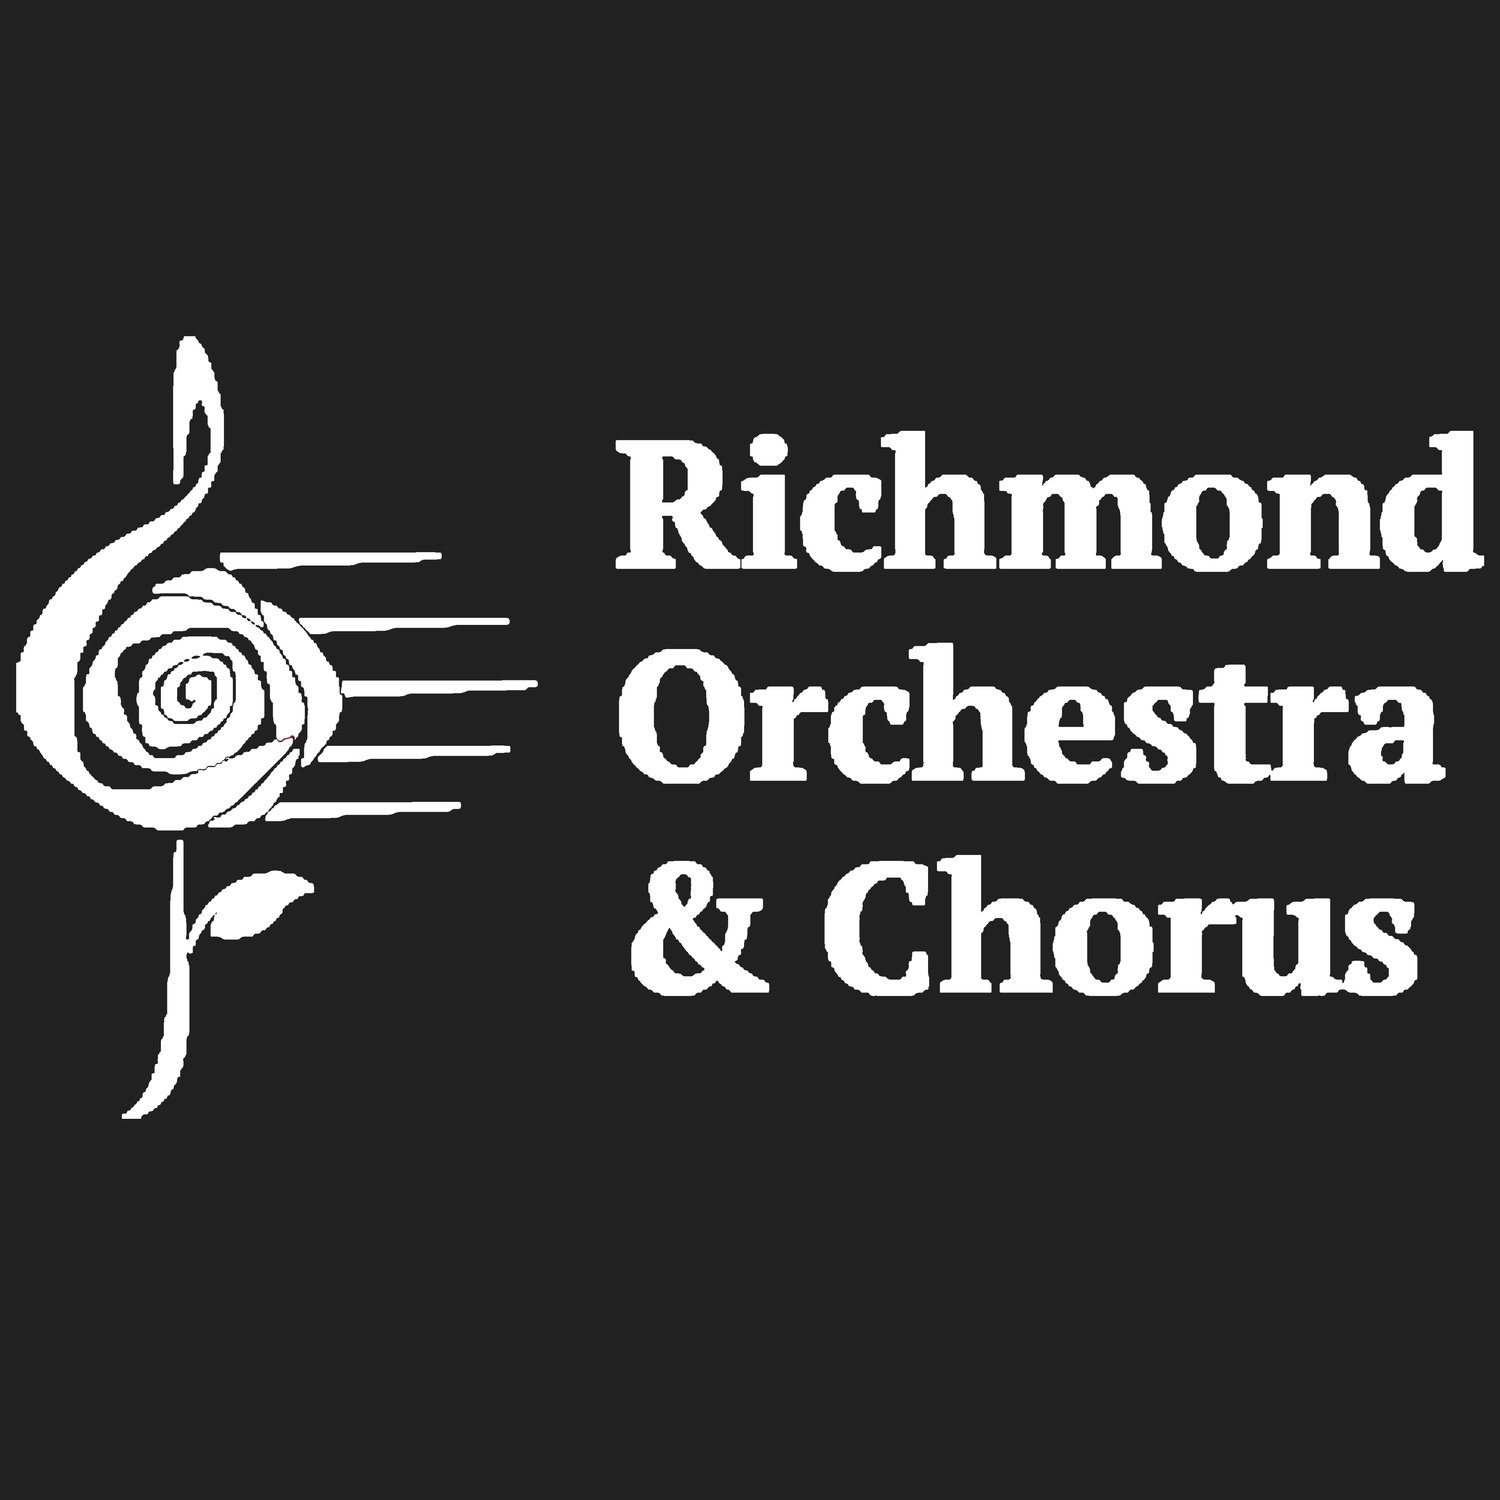 Richmond Orchestra & Chorus